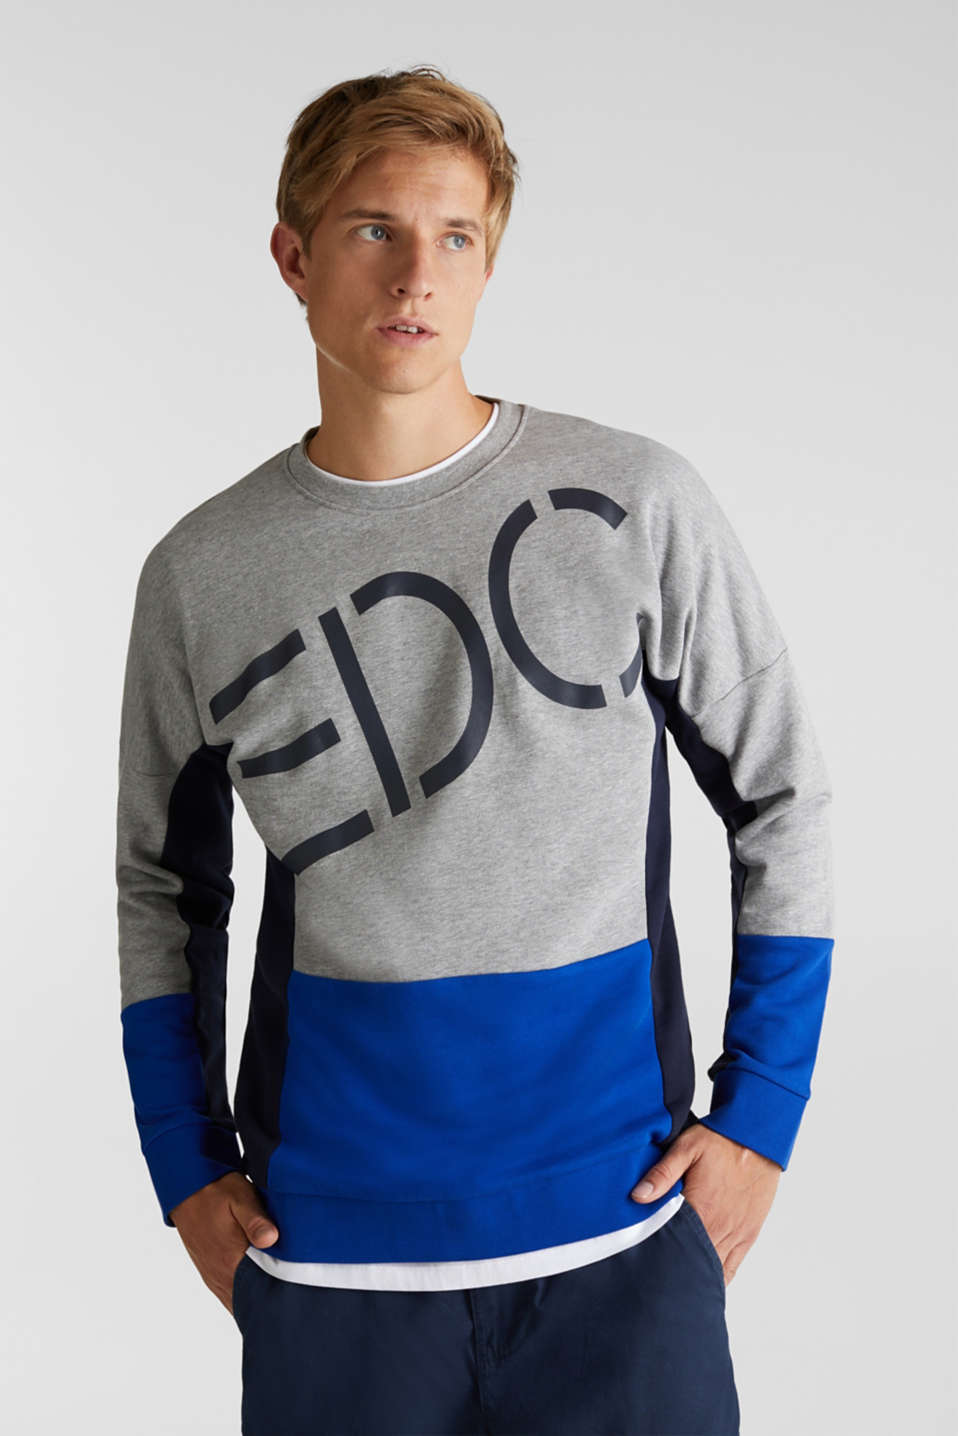 edc - Sweatshirt met logoprint en colour block design